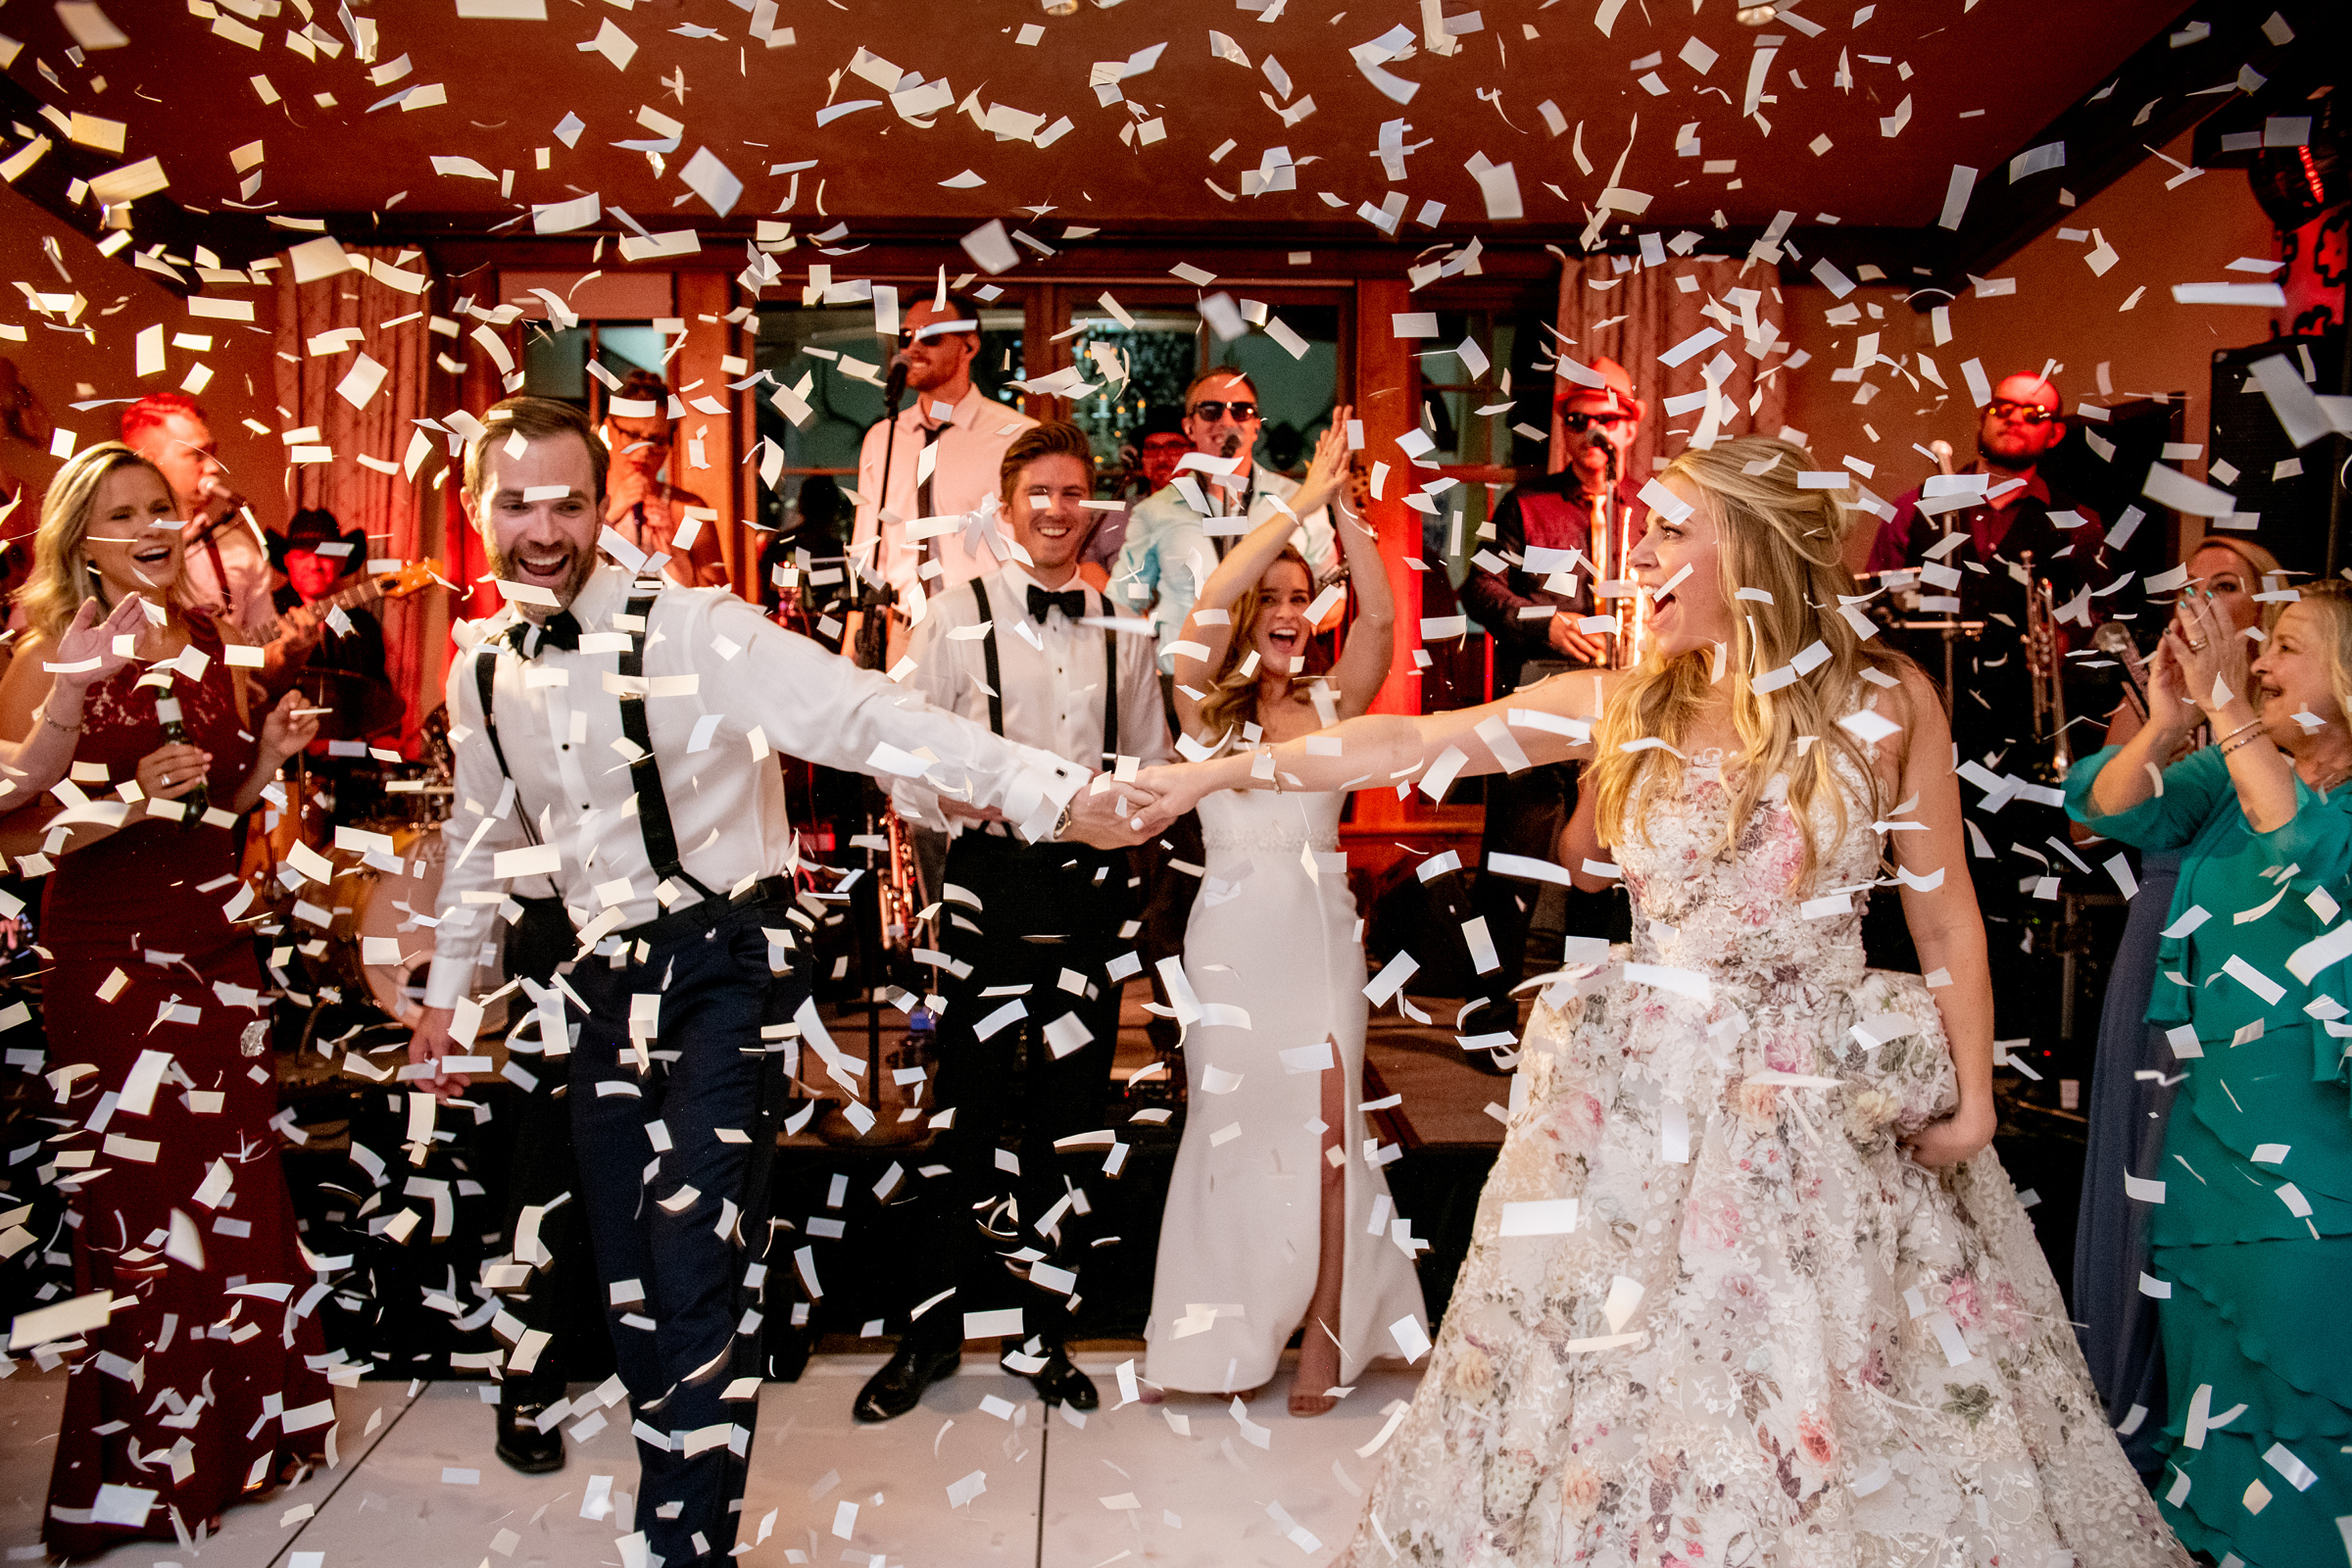 Couple dancing amid confetti - photo by Morgan Lynn Photography